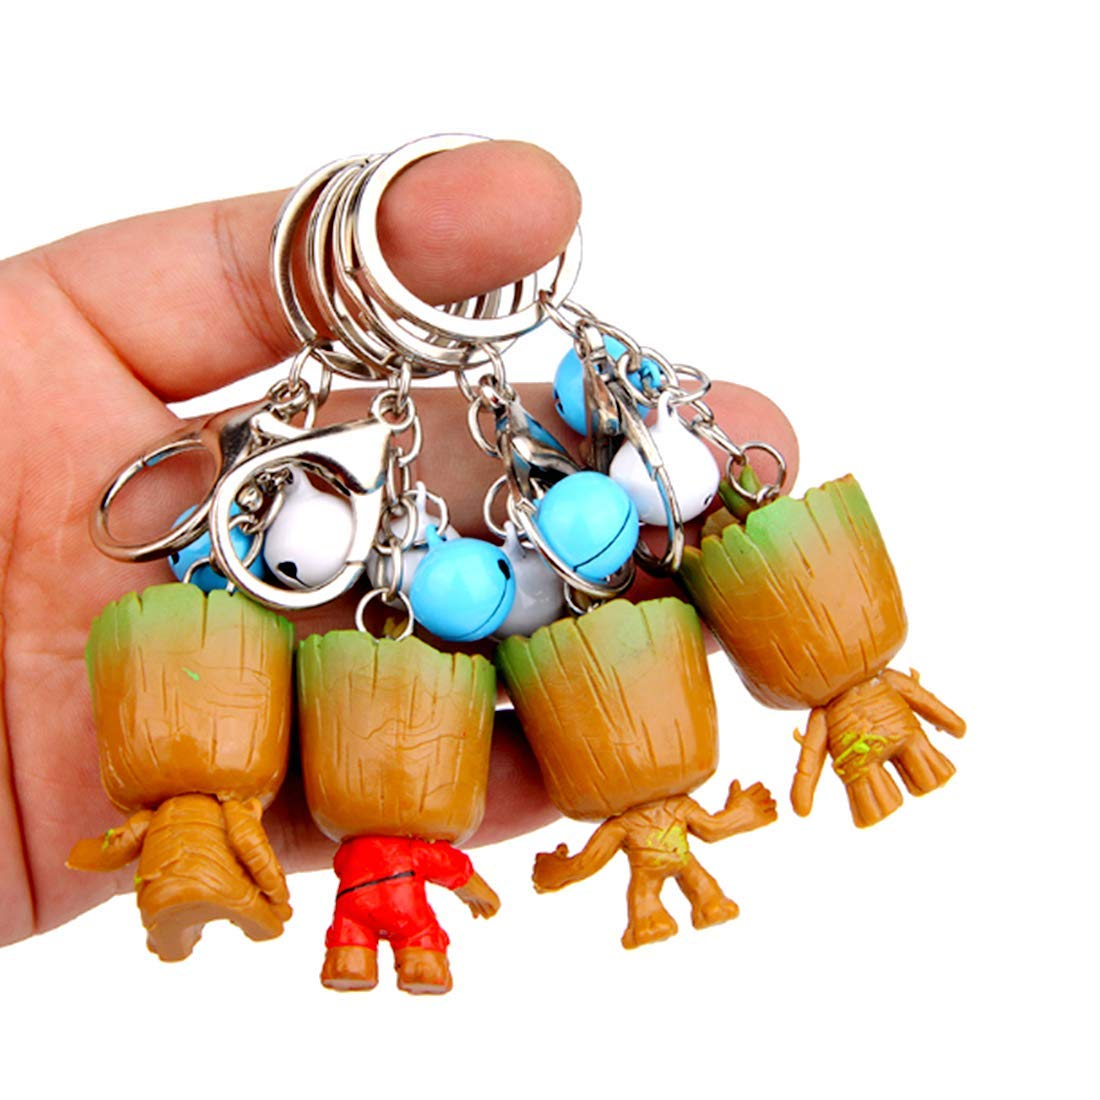 sunliveus 4 Pack Grote Miniature Pendant Key Ring sunliveus 4 Pack Grote Miniature Pendant Key Ring with Bells Cute Baby Groot Keychain